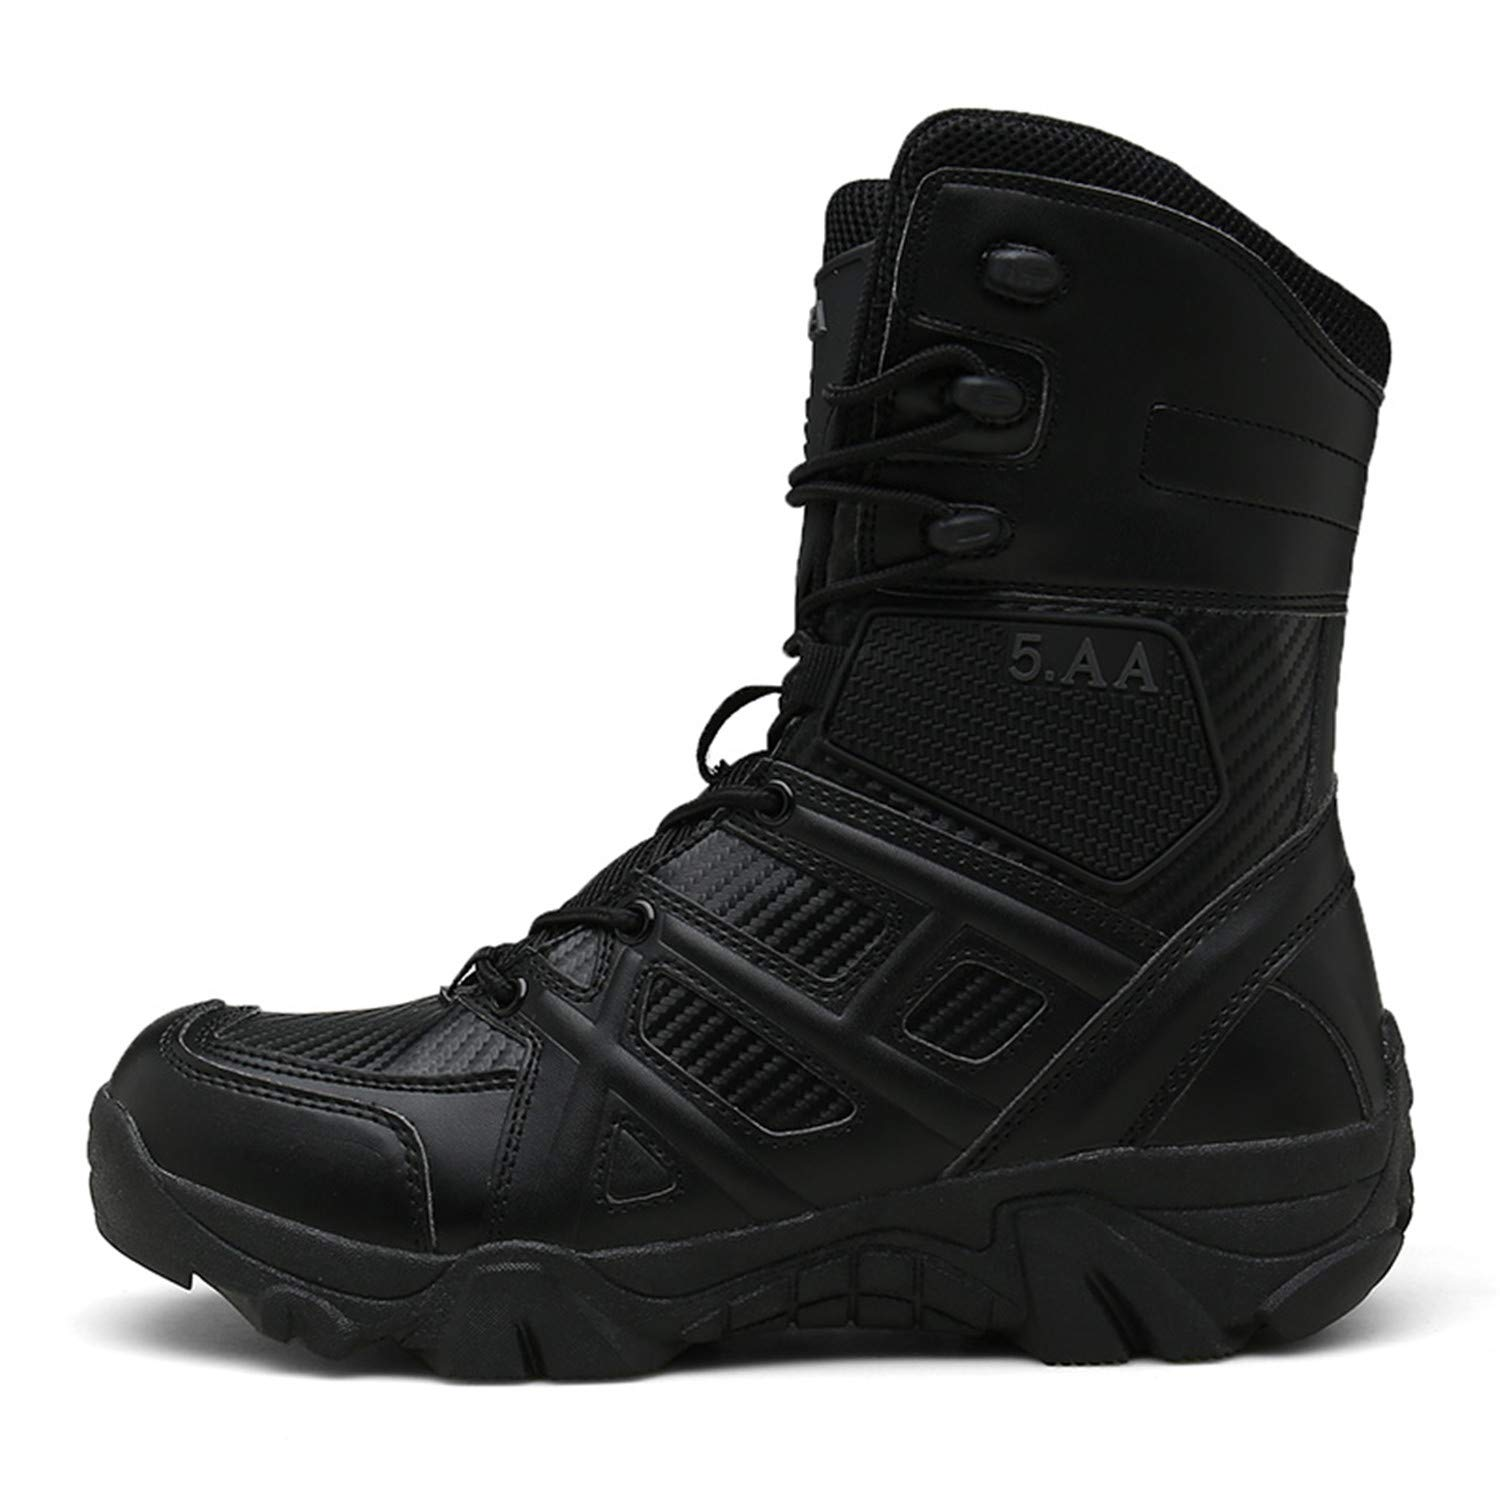 fede00773ce5b Amazon.com  PULUSI Men s Waterproof Tac Force Combat Military Tactical Shoes  Work Boots  Shoes